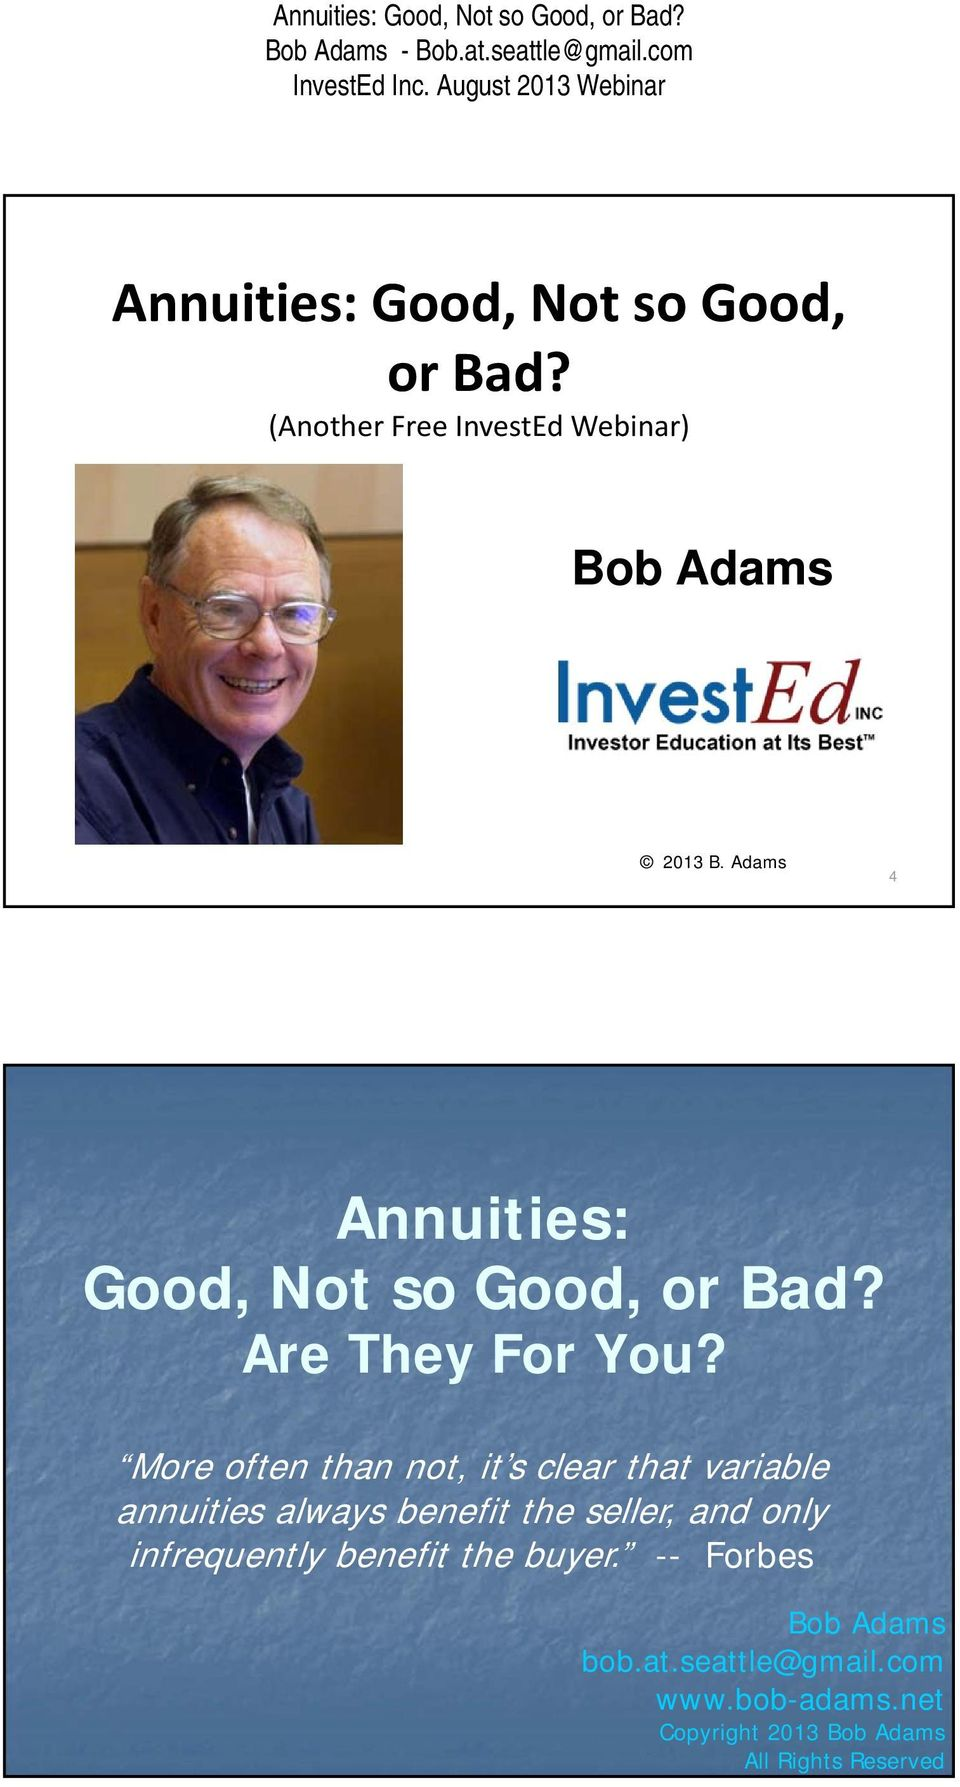 More often than not, it s clear that variable annuities always benefit the seller, and only